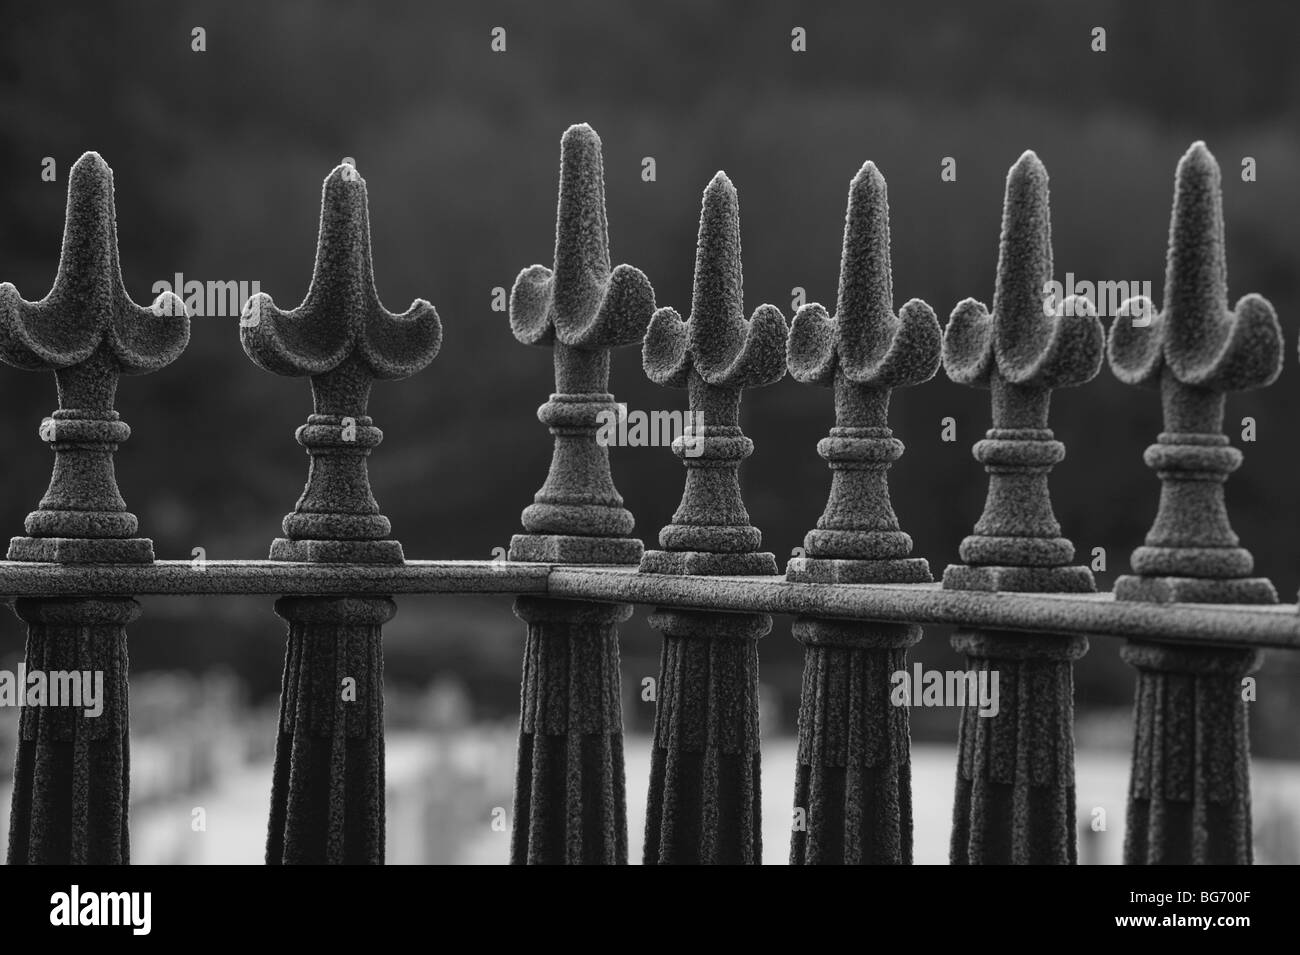 Frosty black iron railings in the depth of winter - Stock Image